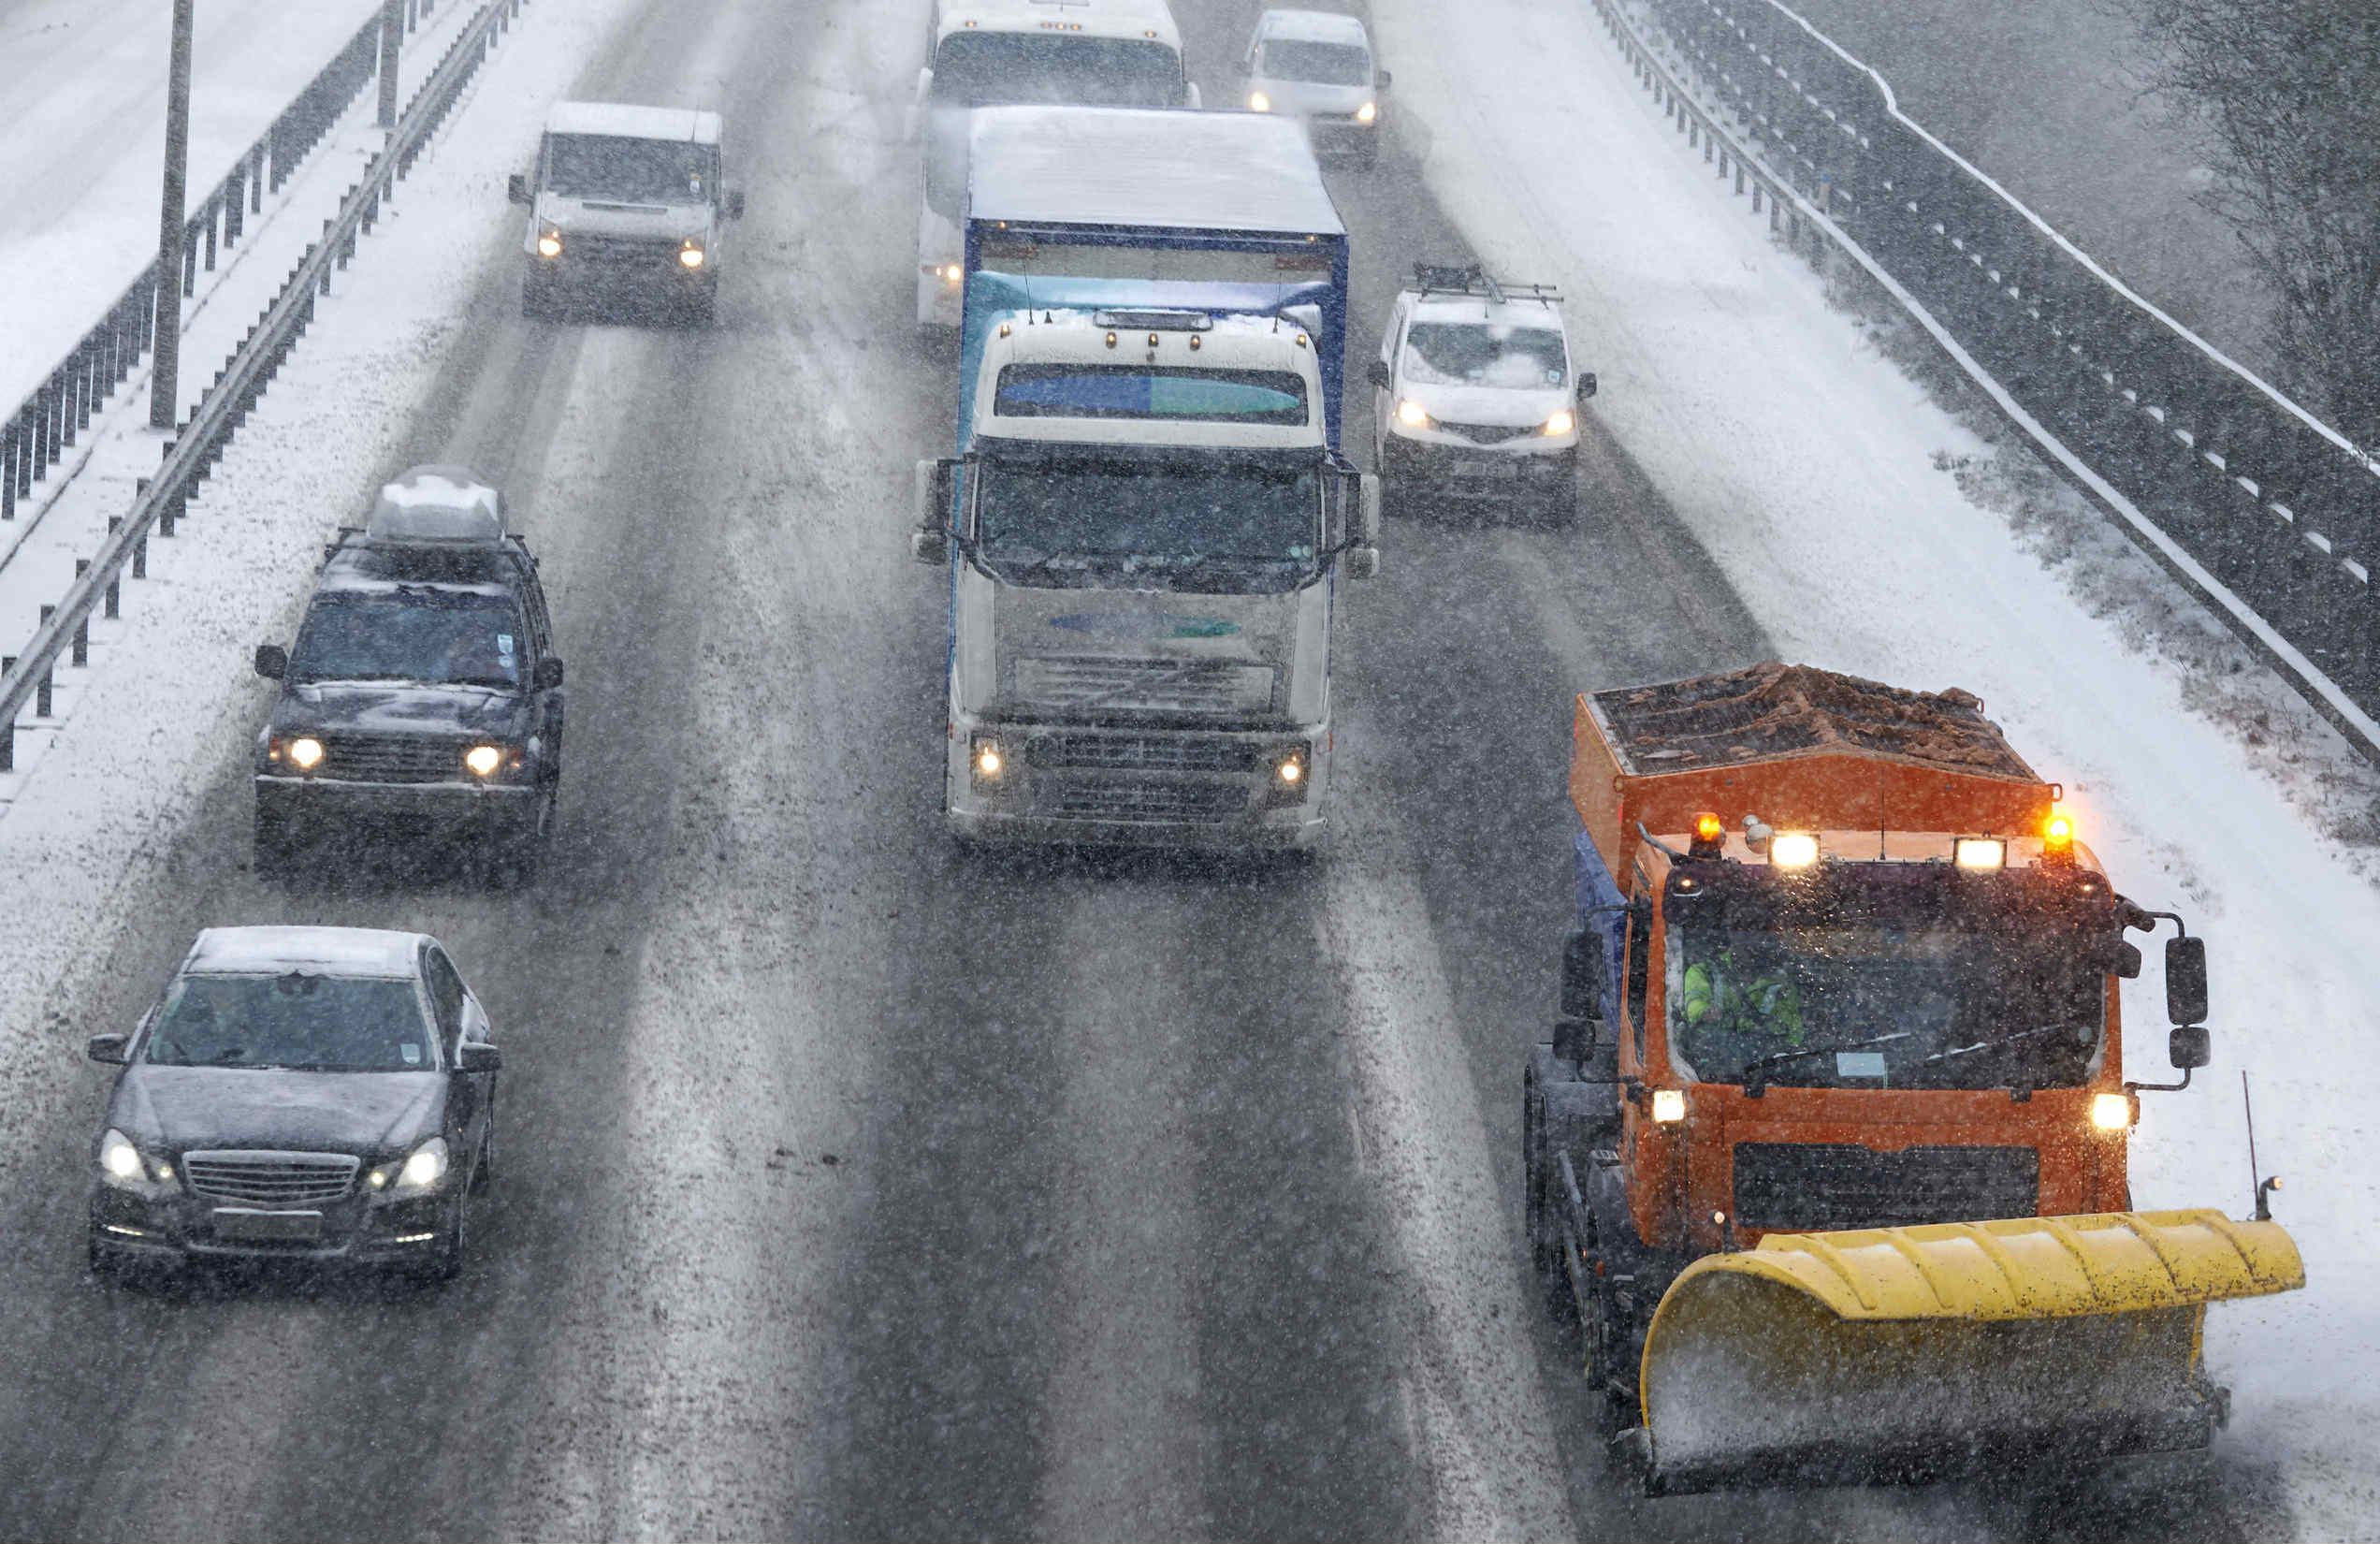 image of vehicles stuck on the motorway in winter conditions